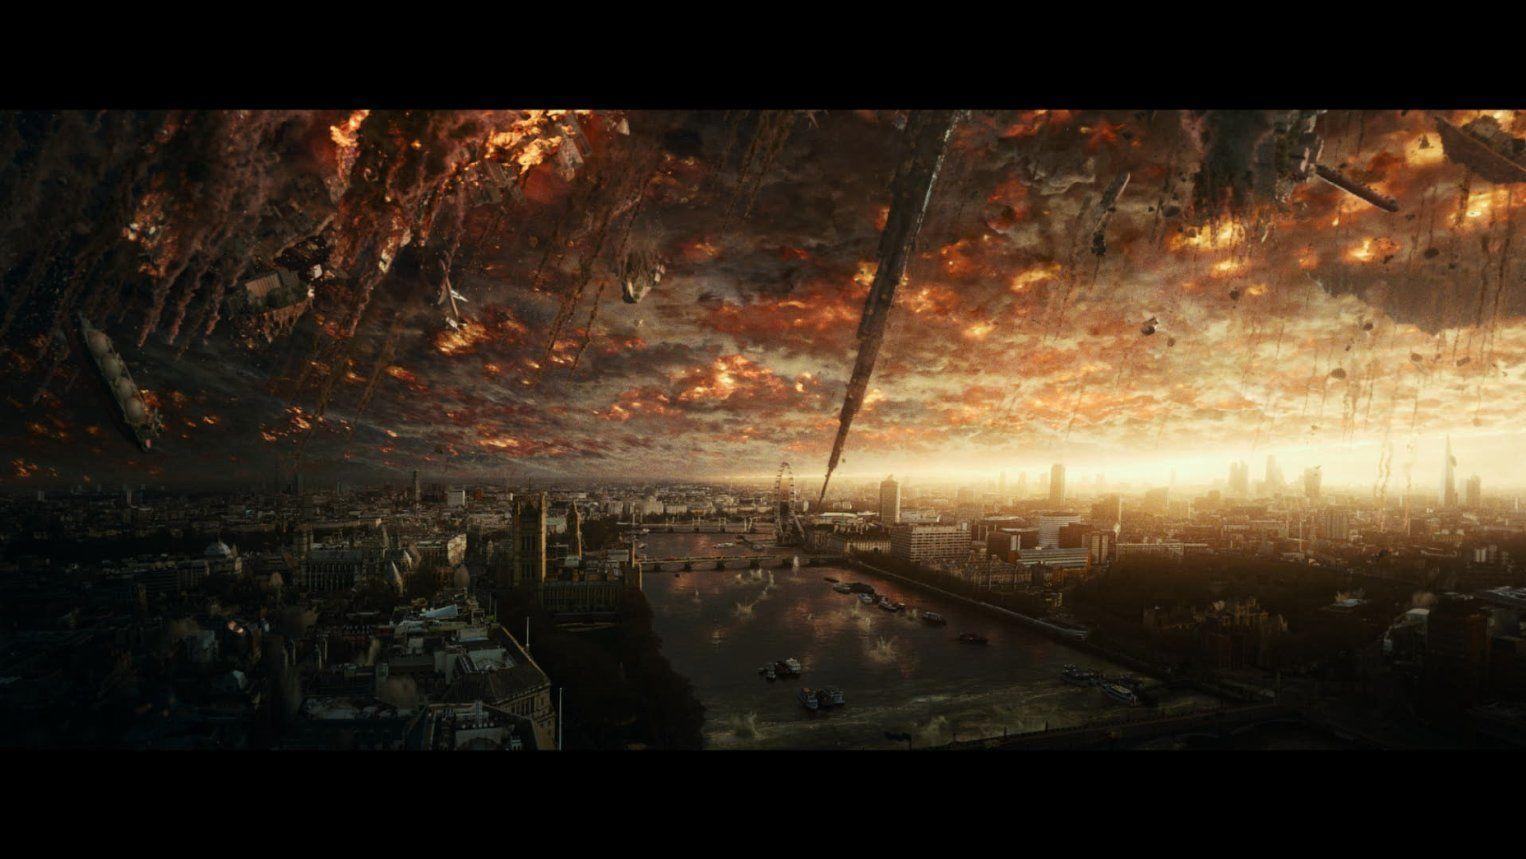 Fantastic Wallpaper Movie Independence Day - wc1710152  Collection_1001865.jpg